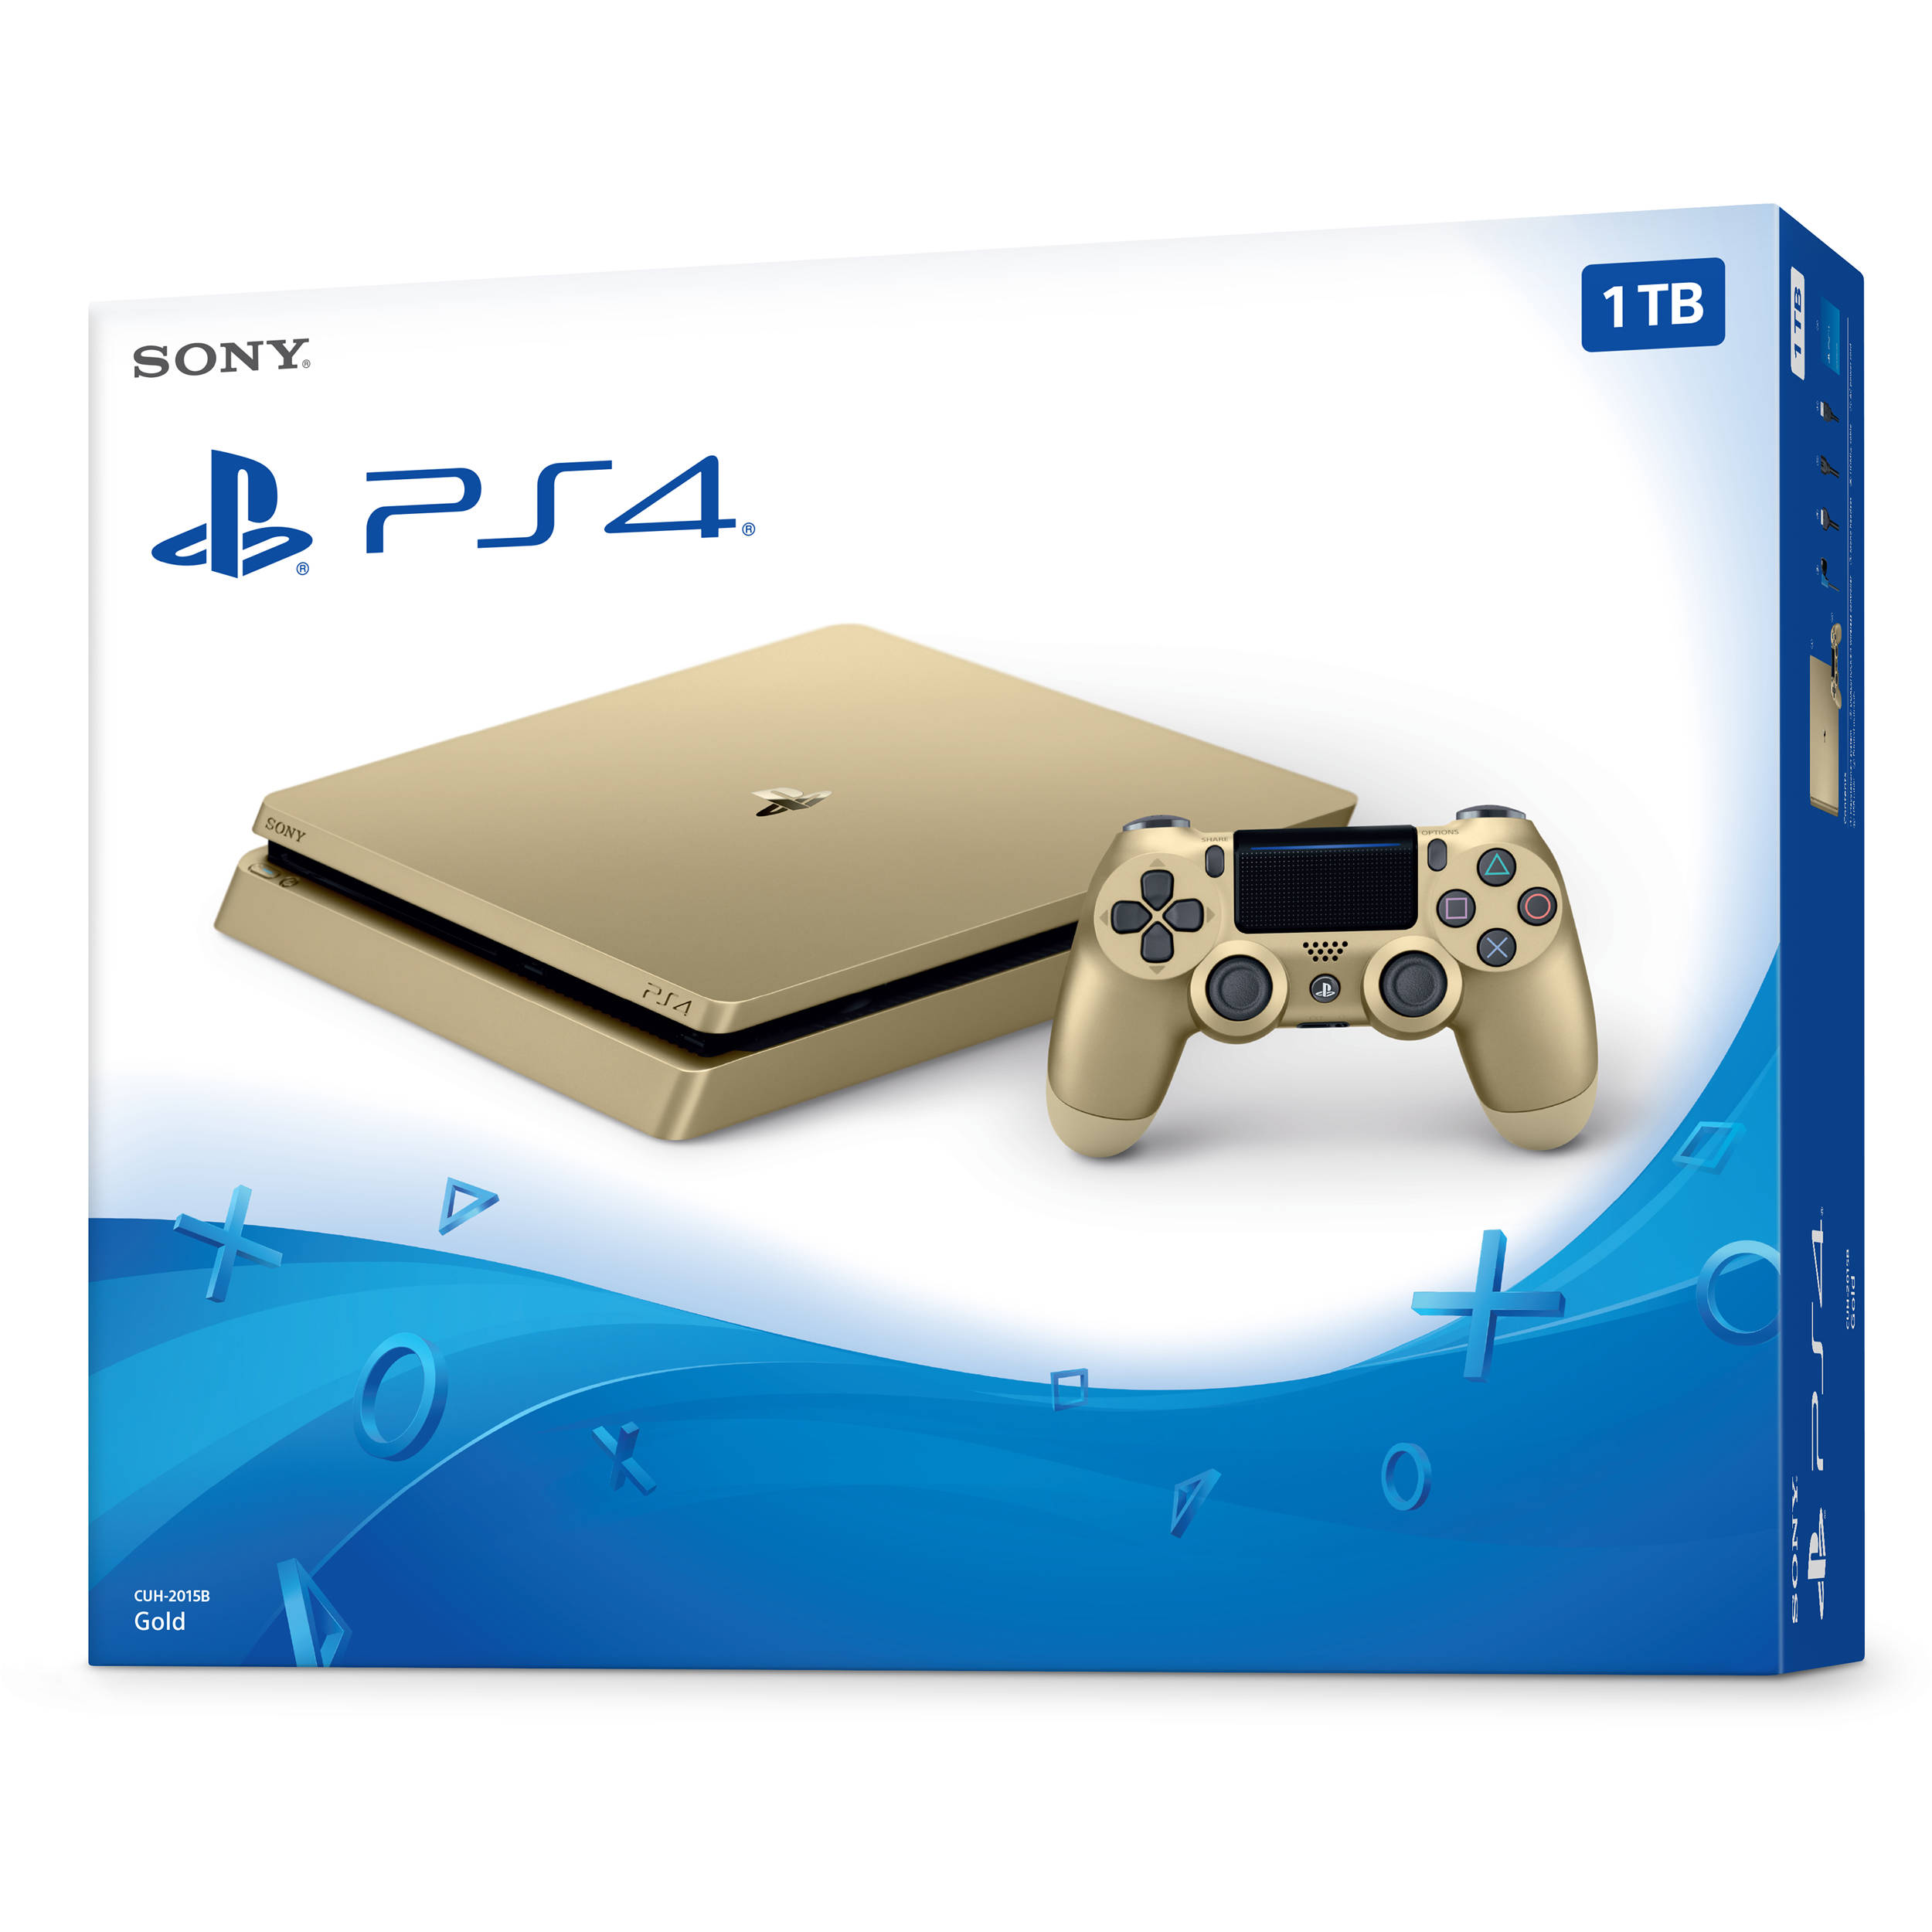 sony ps4 console. sony playstation 4 slim gaming console (gold) ps4